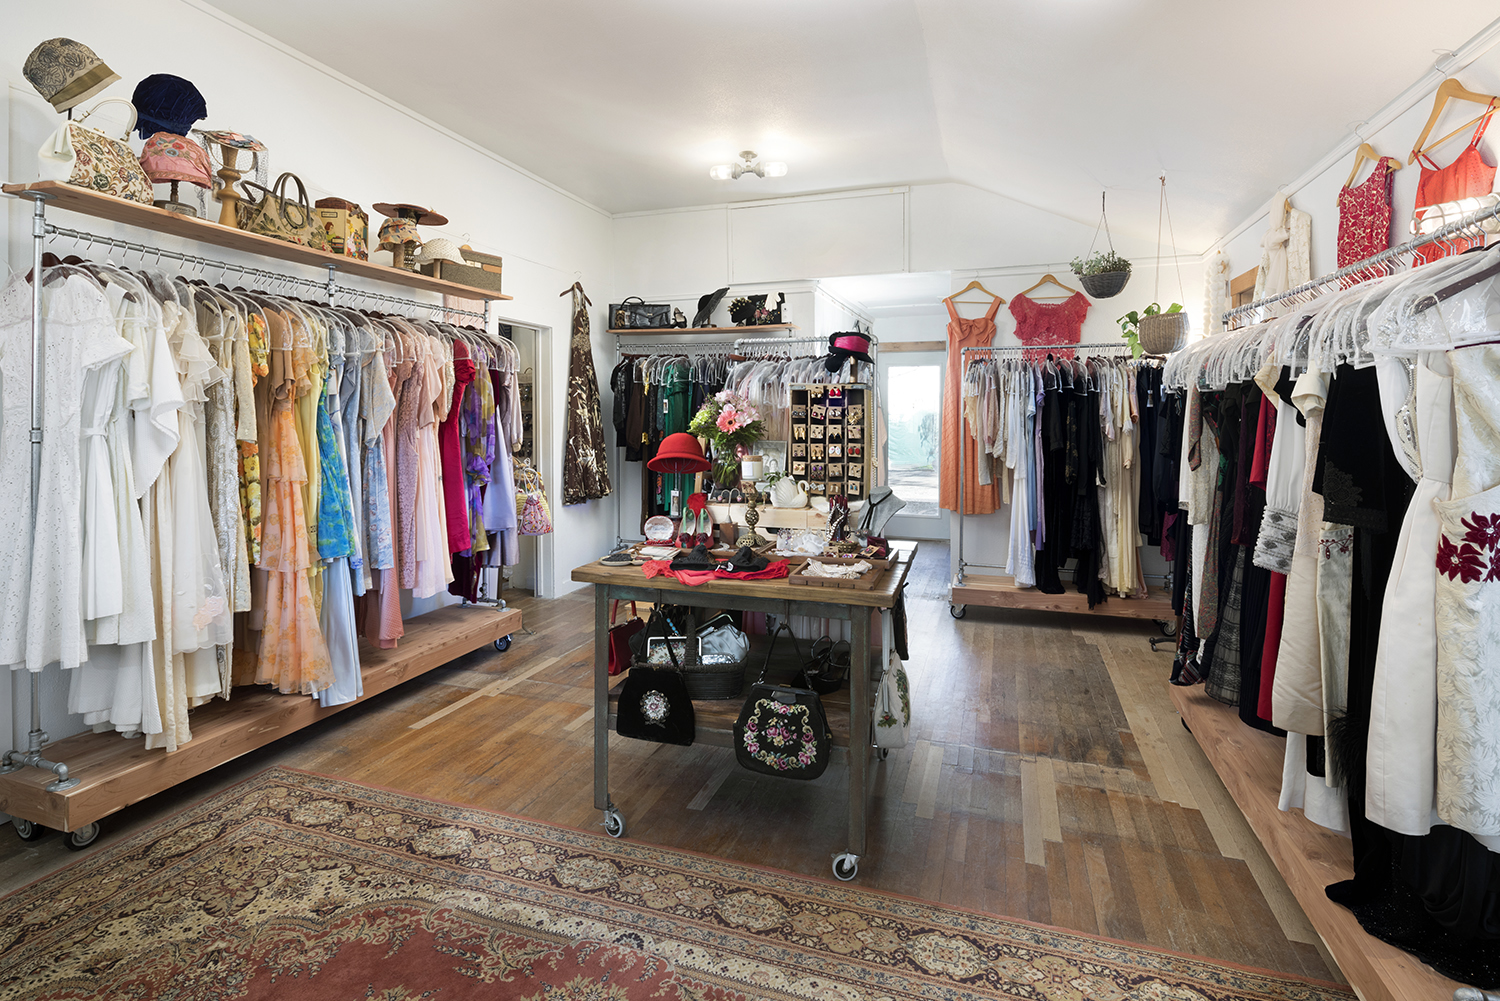 Bloomers and Frocks Vintage Clothing Boutique